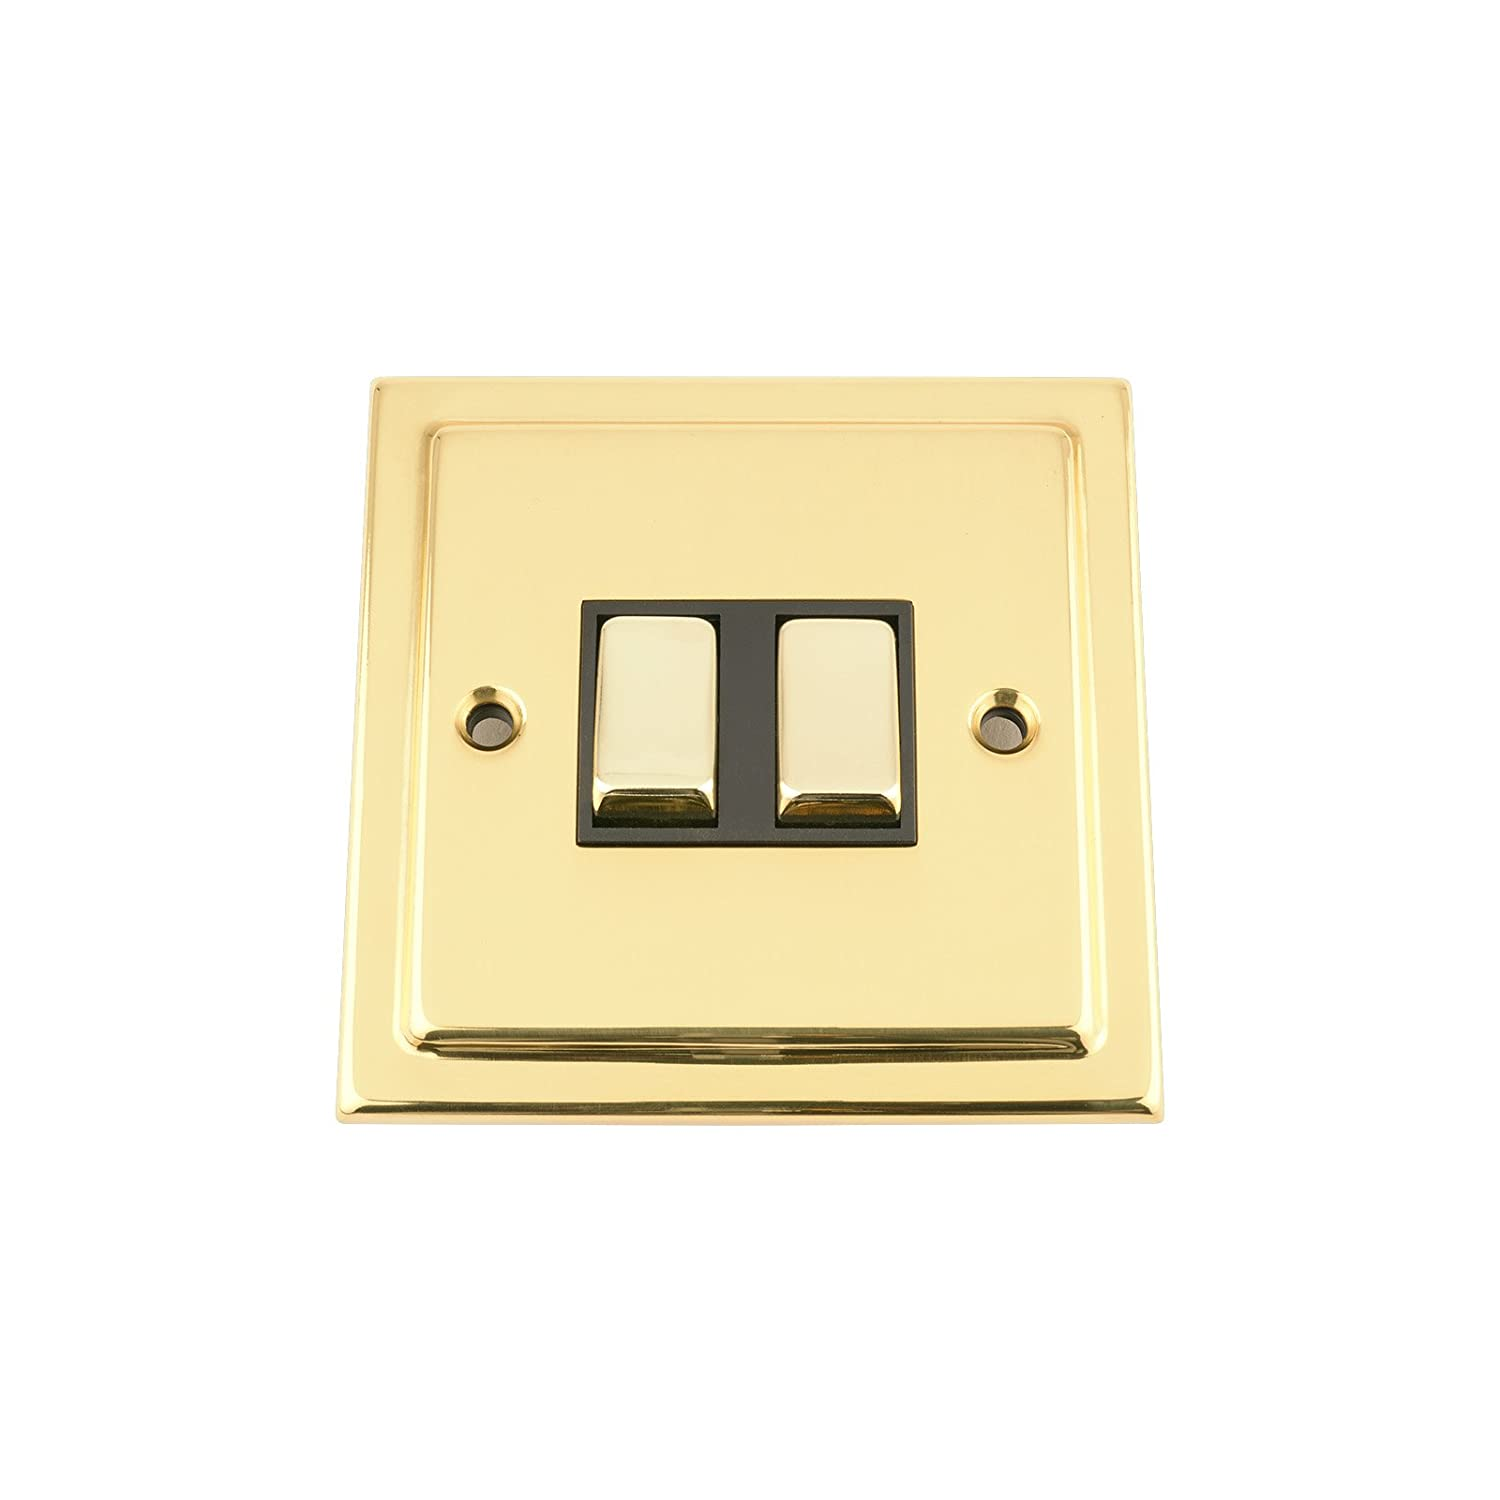 A5 Double Light Switch 2 Gang 2 Way 10A - Polished Brass Victorian - Black - Metal Rocker Switch A5 Products